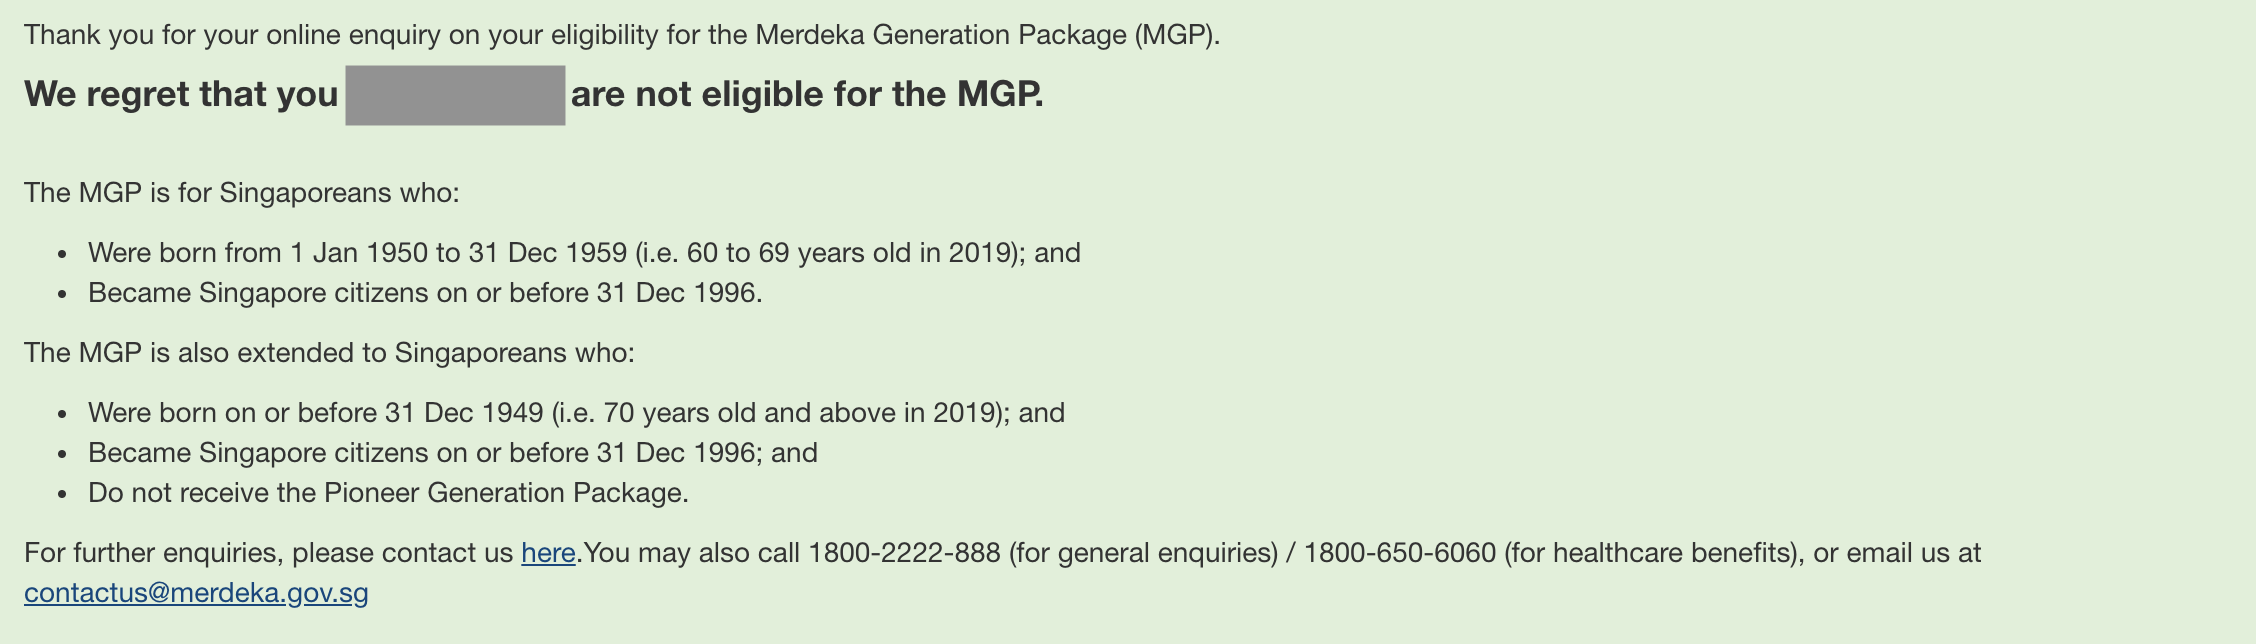 Merdeka Generation Package